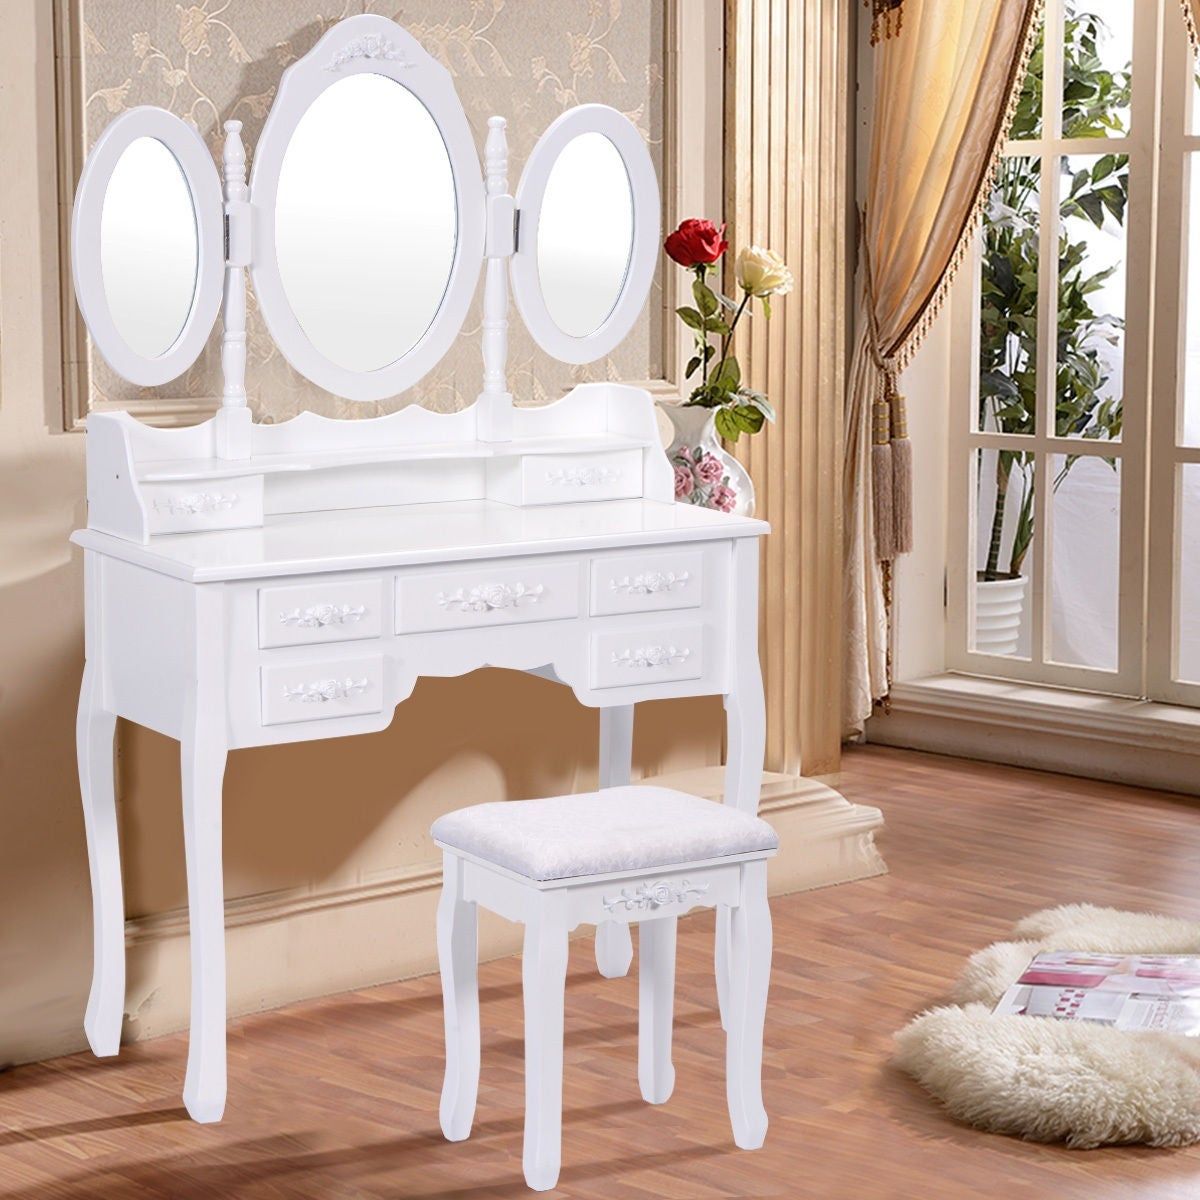 Shop Costway White Tri Folding Oval Mirror Wood Vanity Makeup Table ...